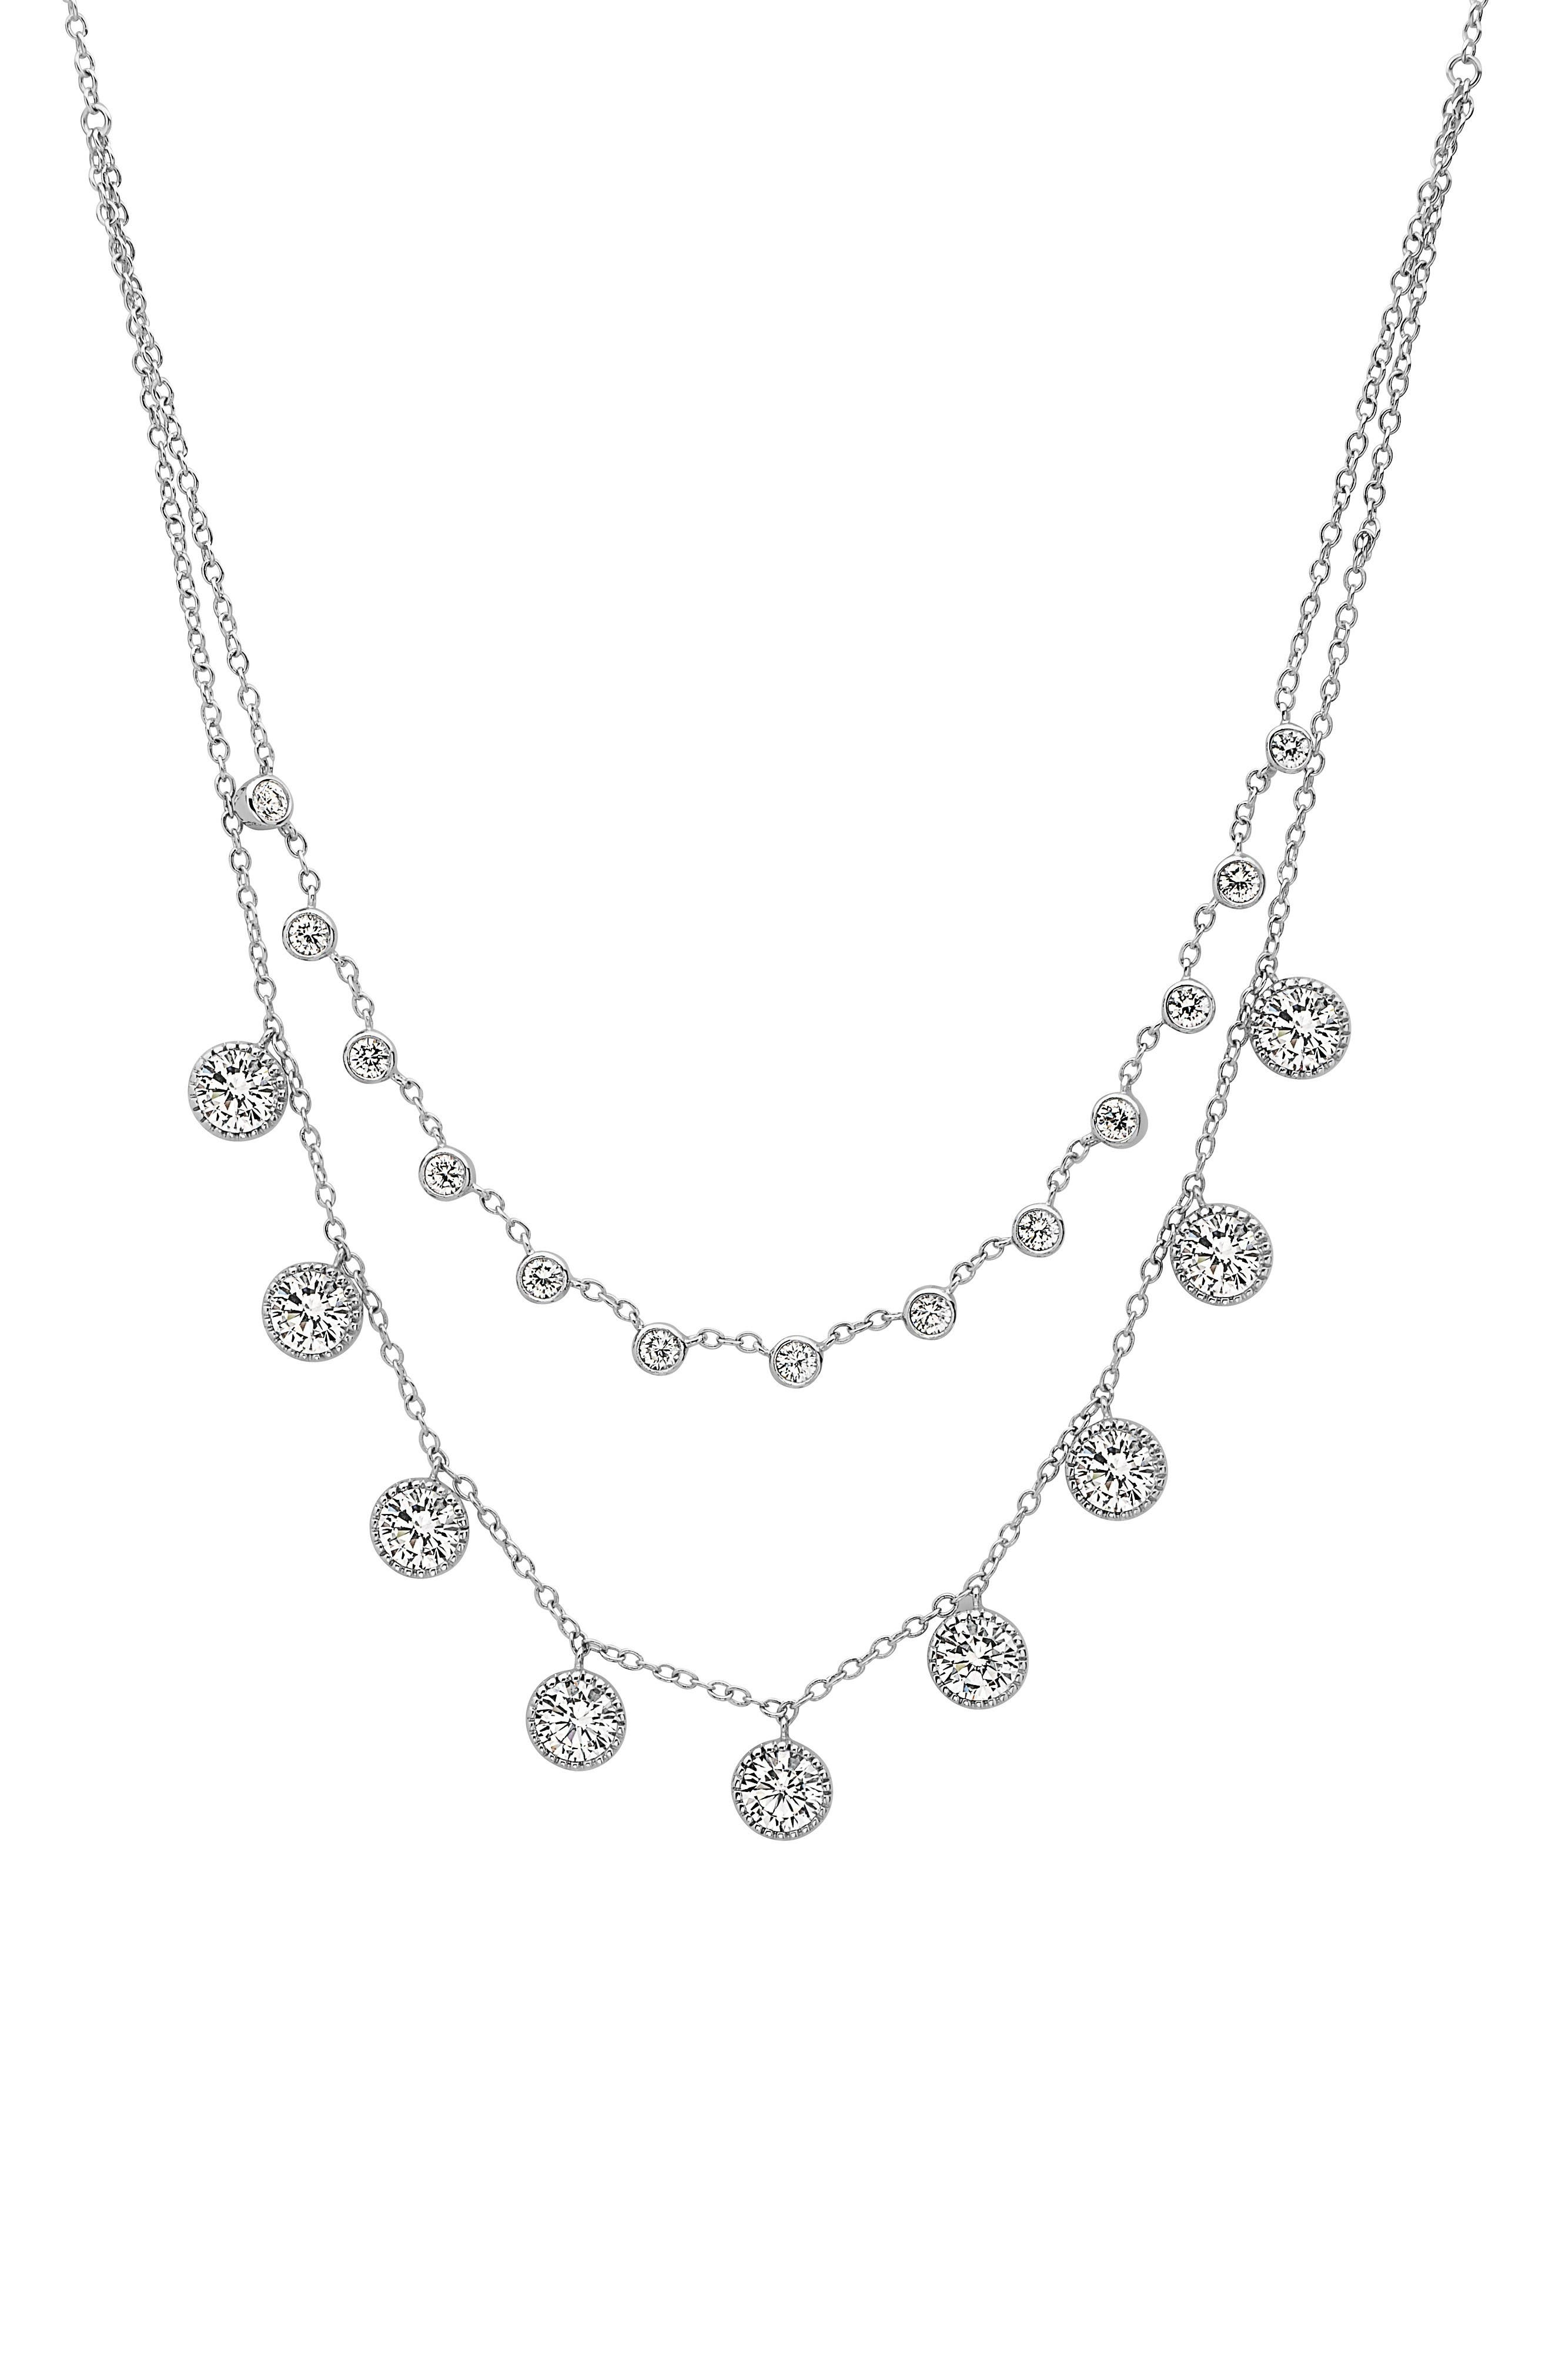 Frontal Necklace,                         Main,                         color, Silver